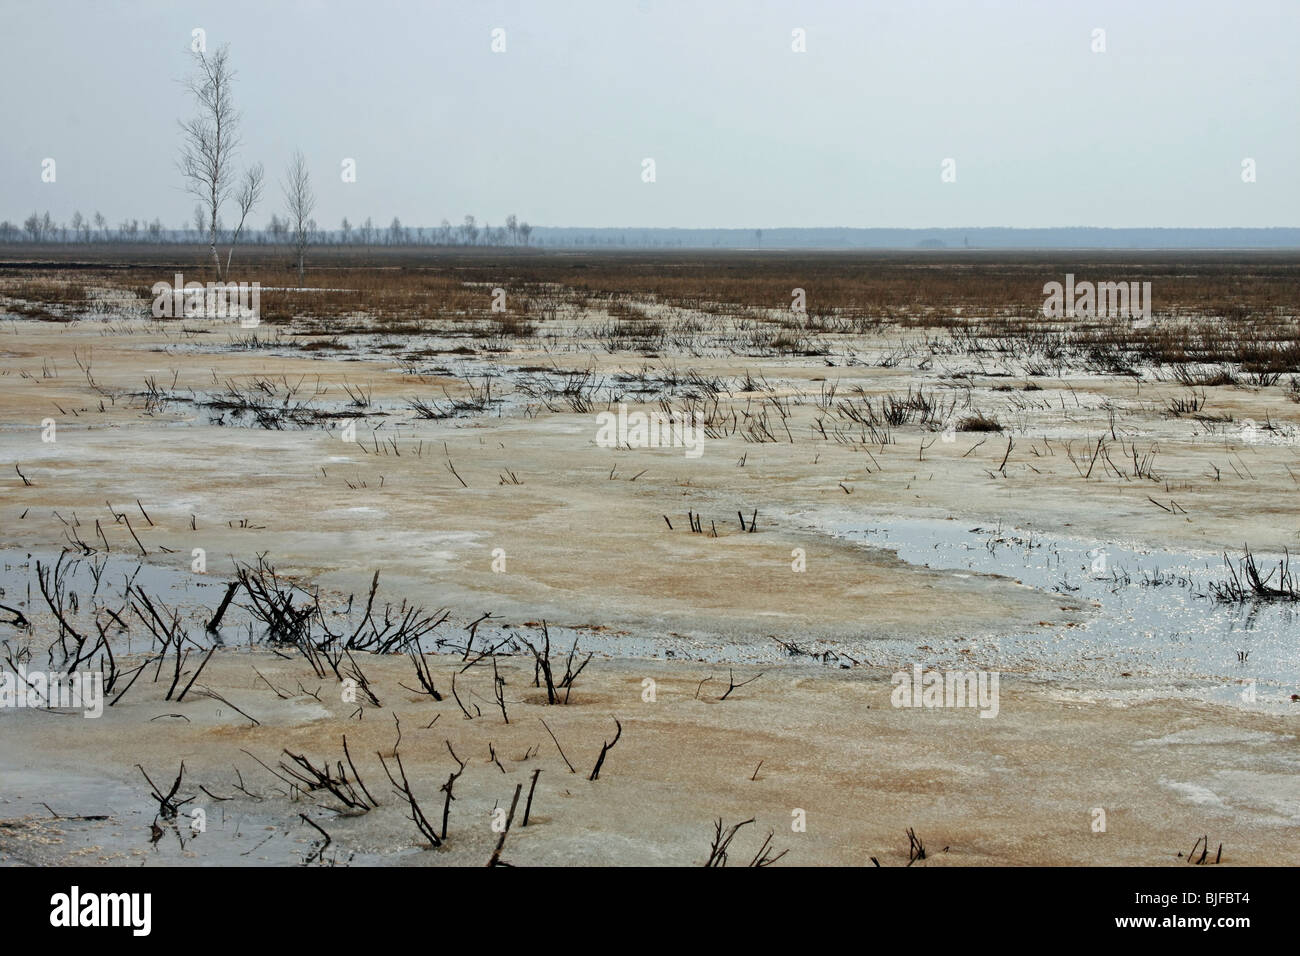 spreads of Biebrza river, marches in east Poland - Stock Image